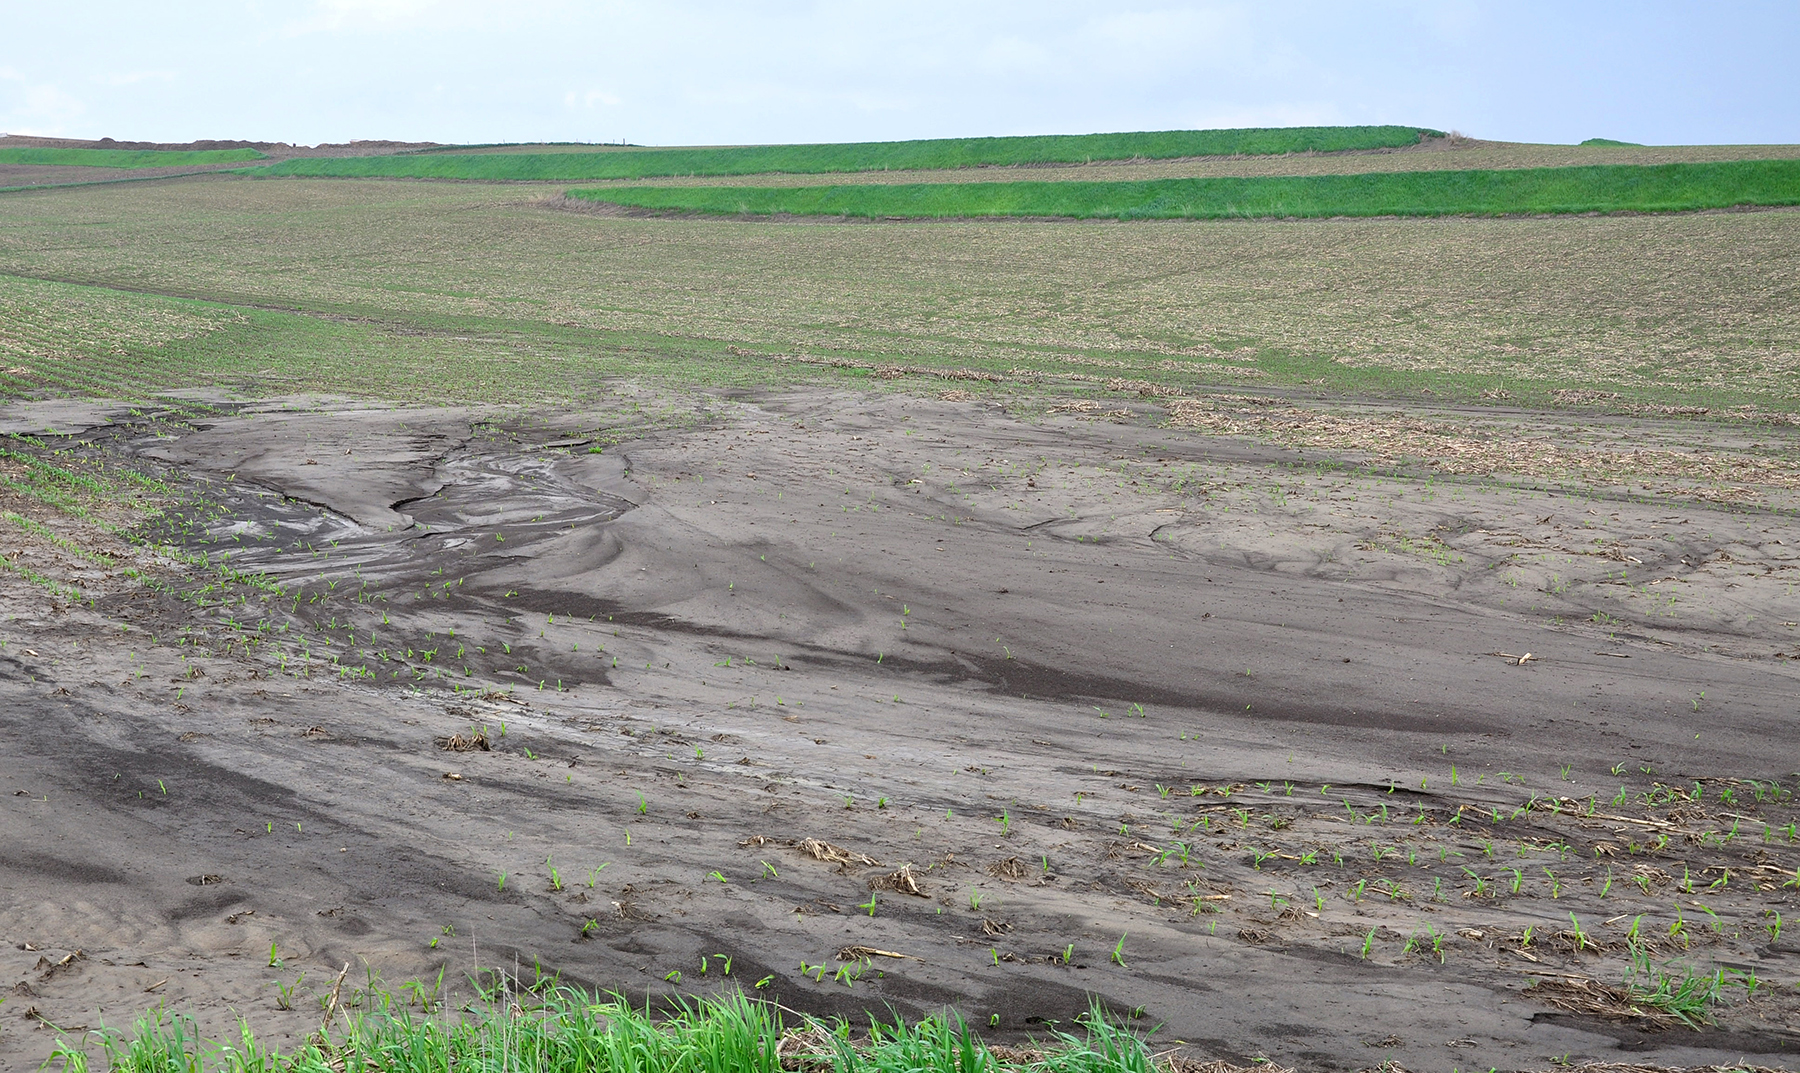 A silt fan formed in a field corner, covering newly planted corn on this western Iowa farm.